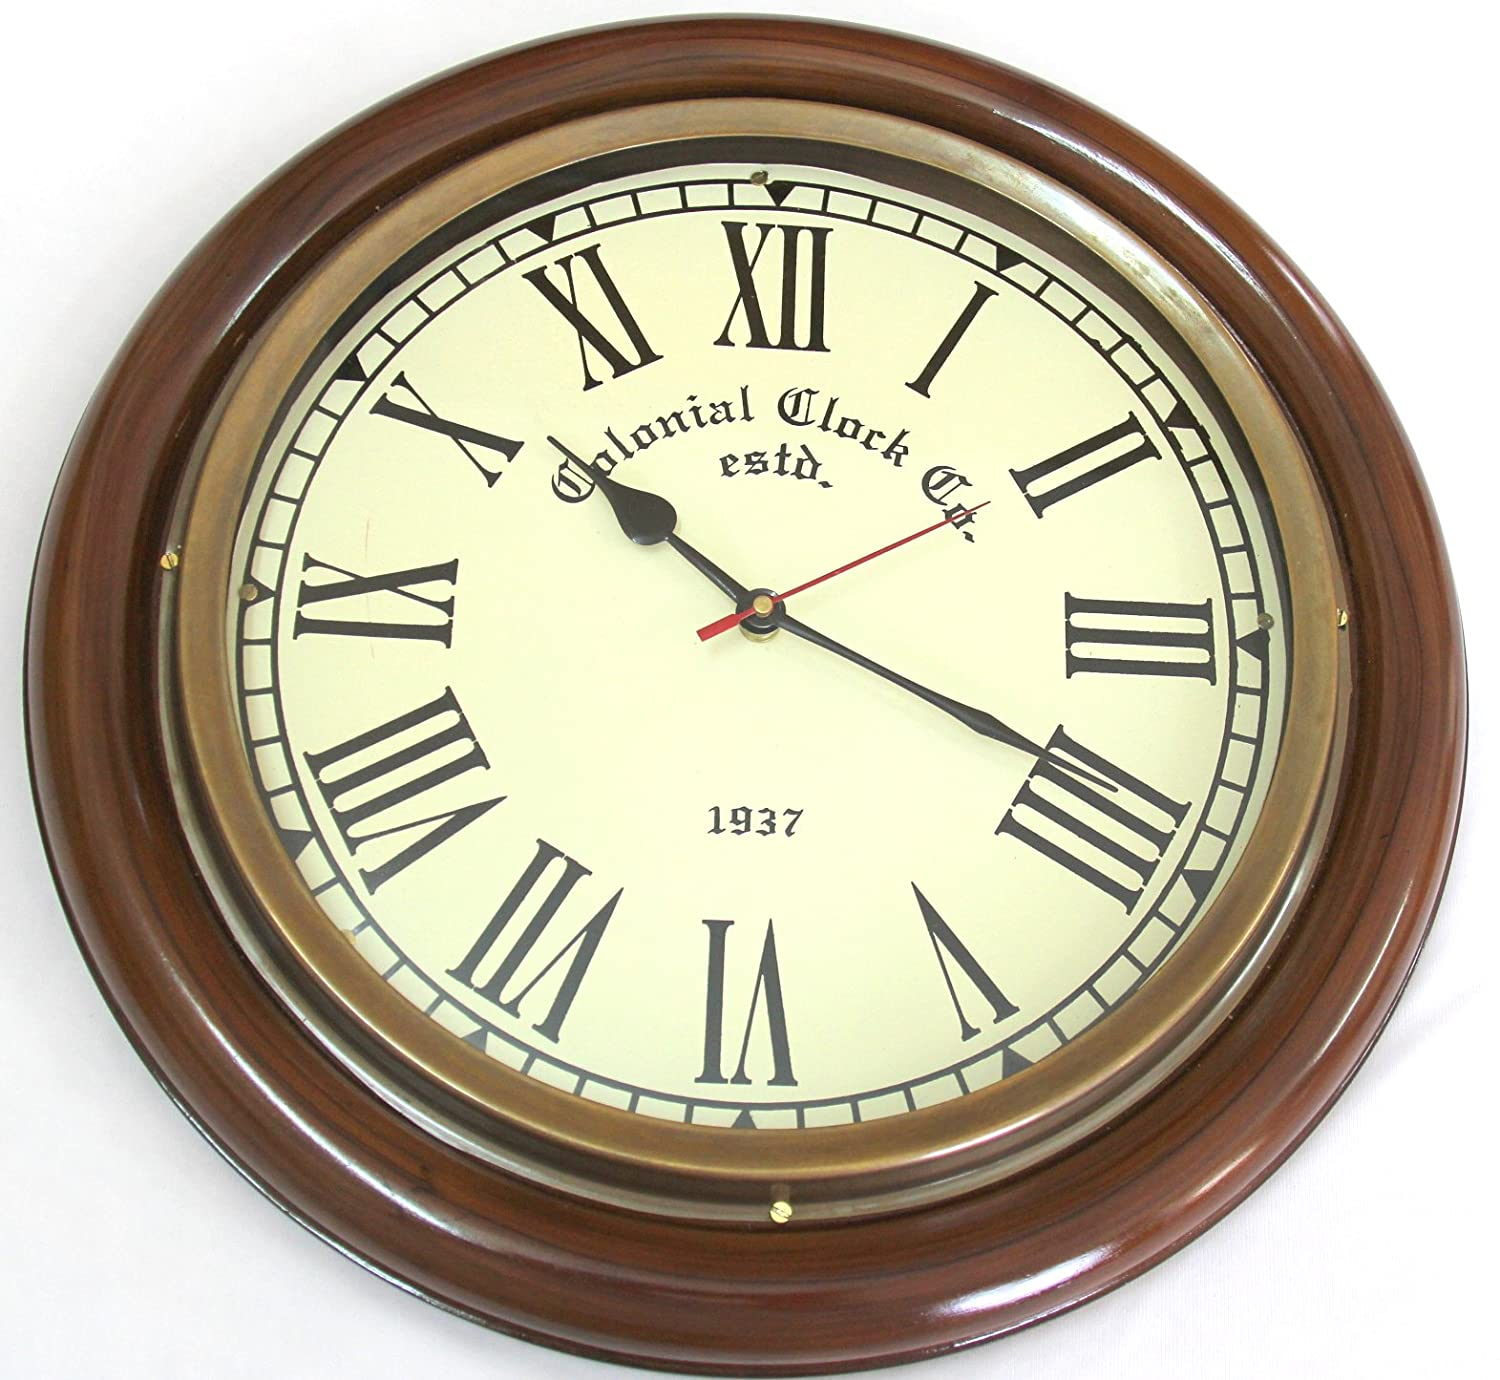 Antique Wall Watch Images Galleries